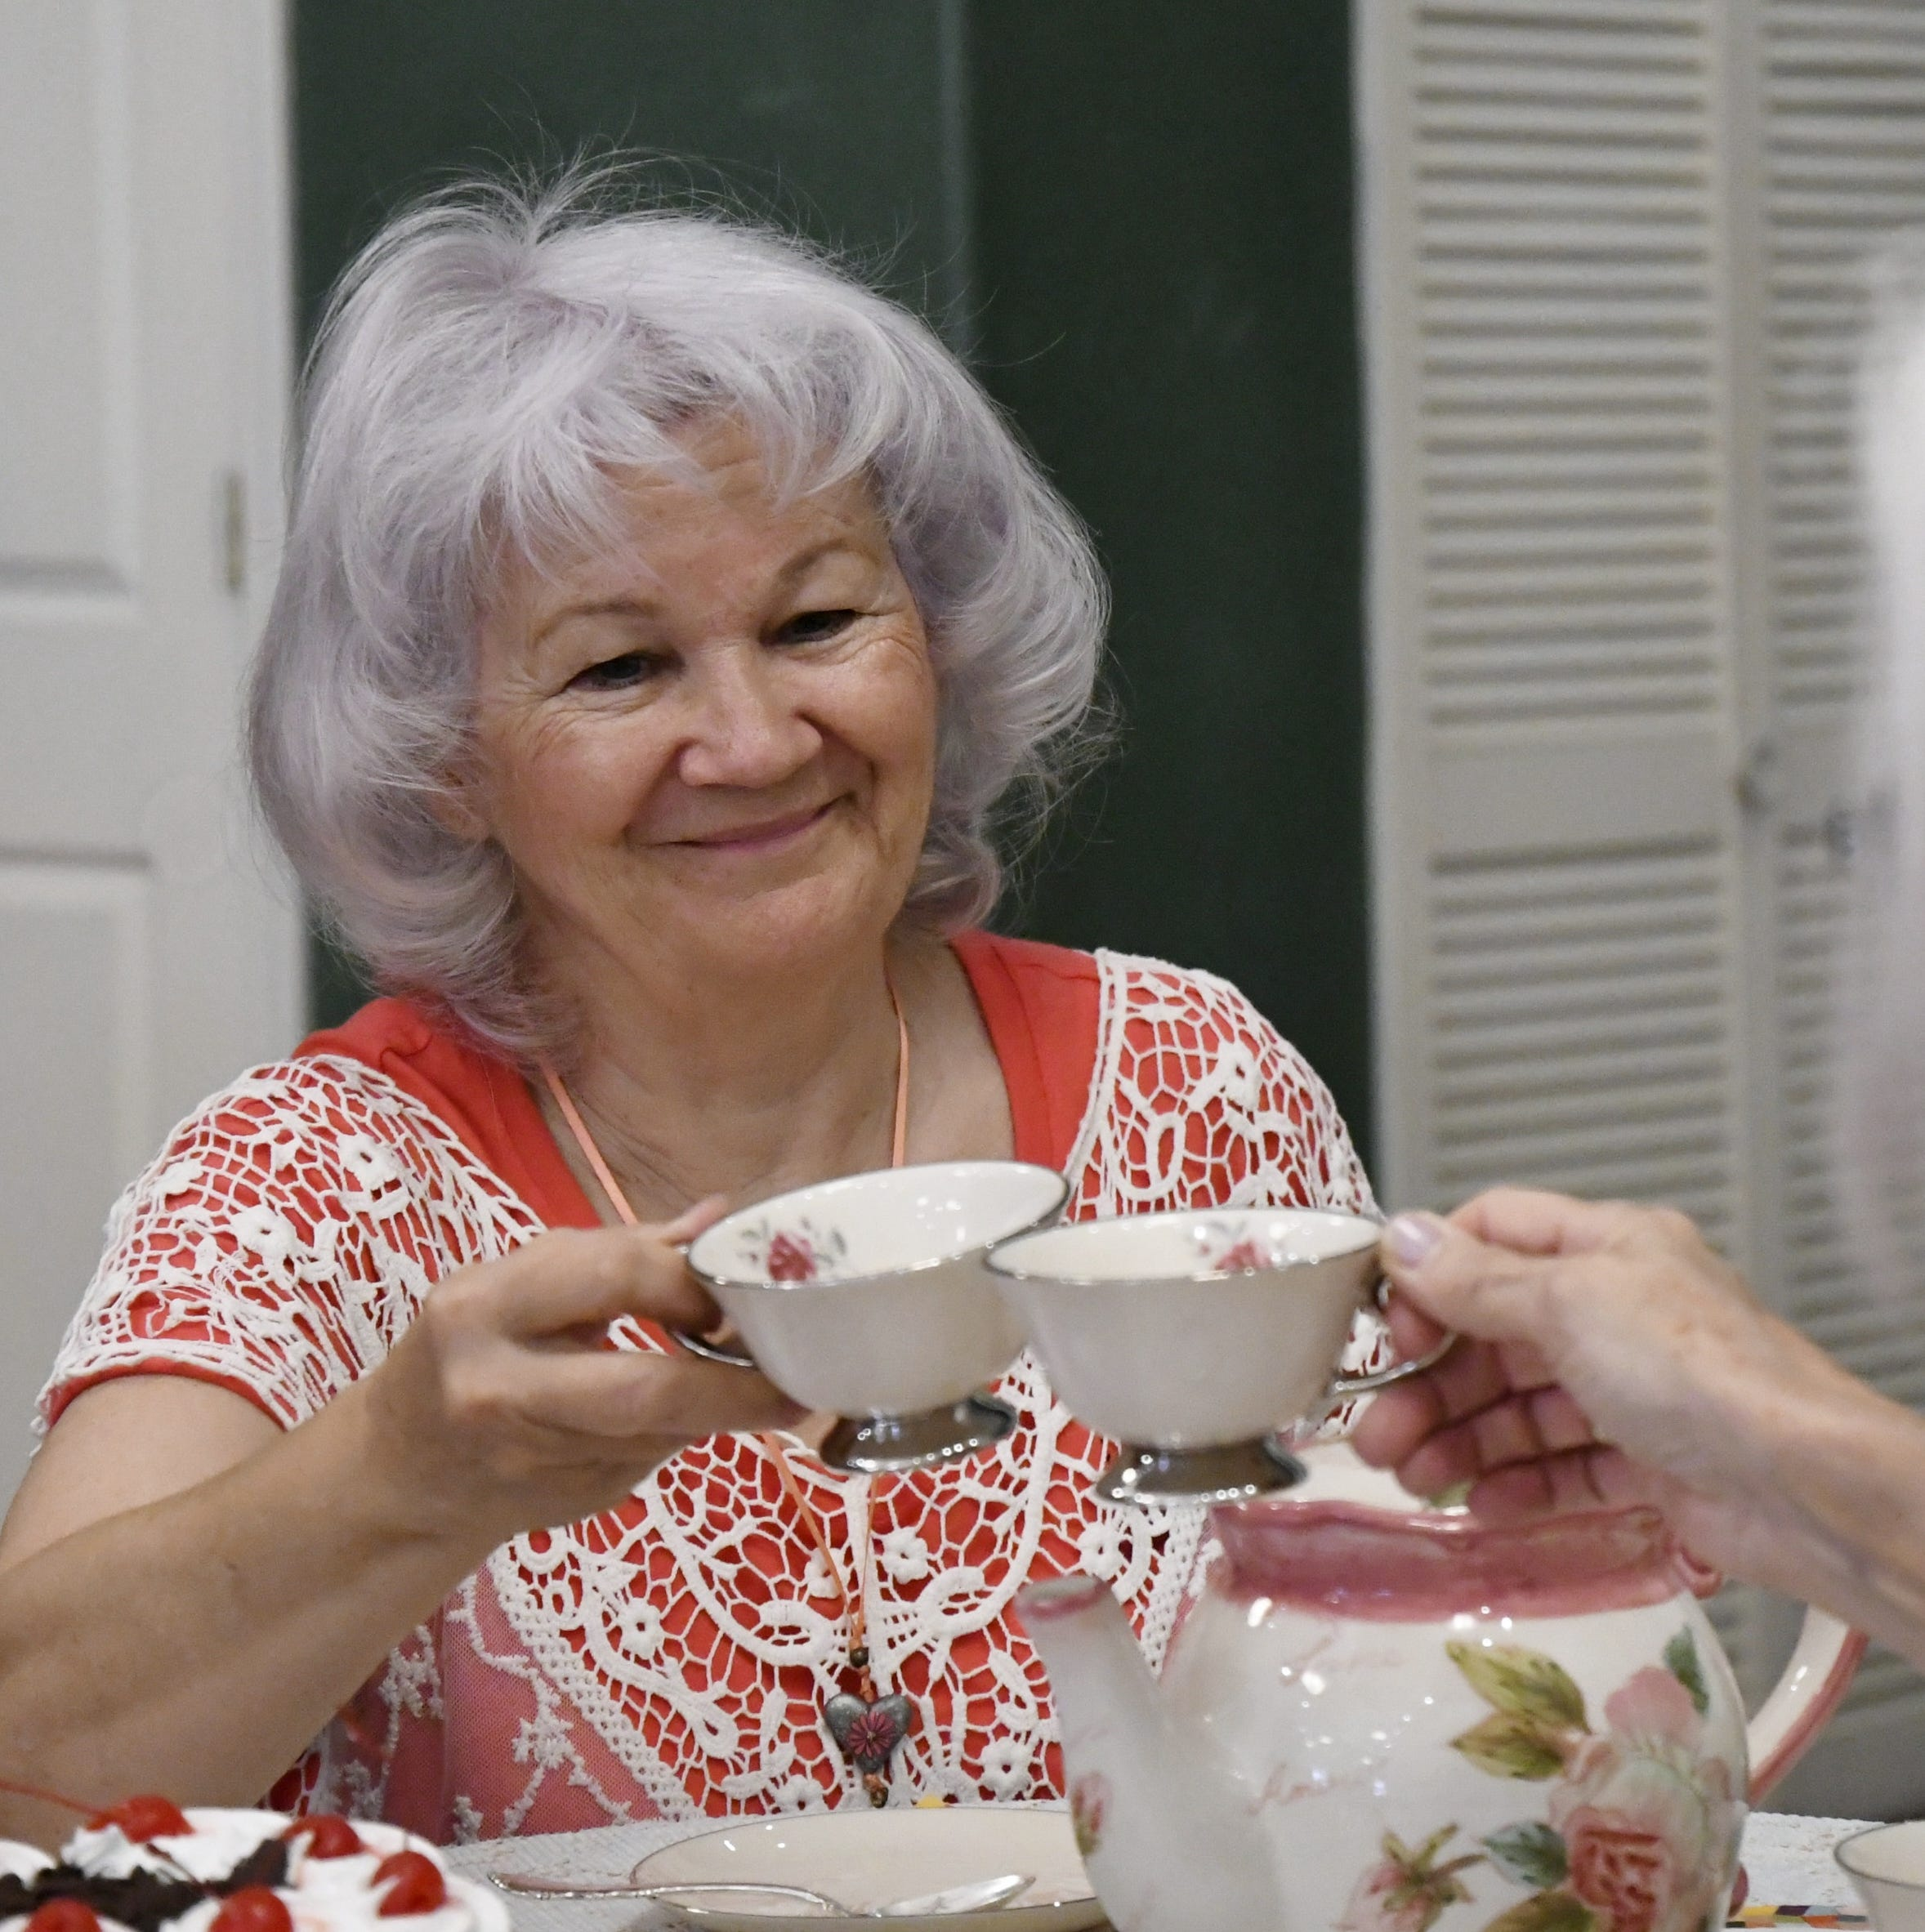 Not-so grim reapers: Death Café movement comes to Visalia, with aim to lighten mortality